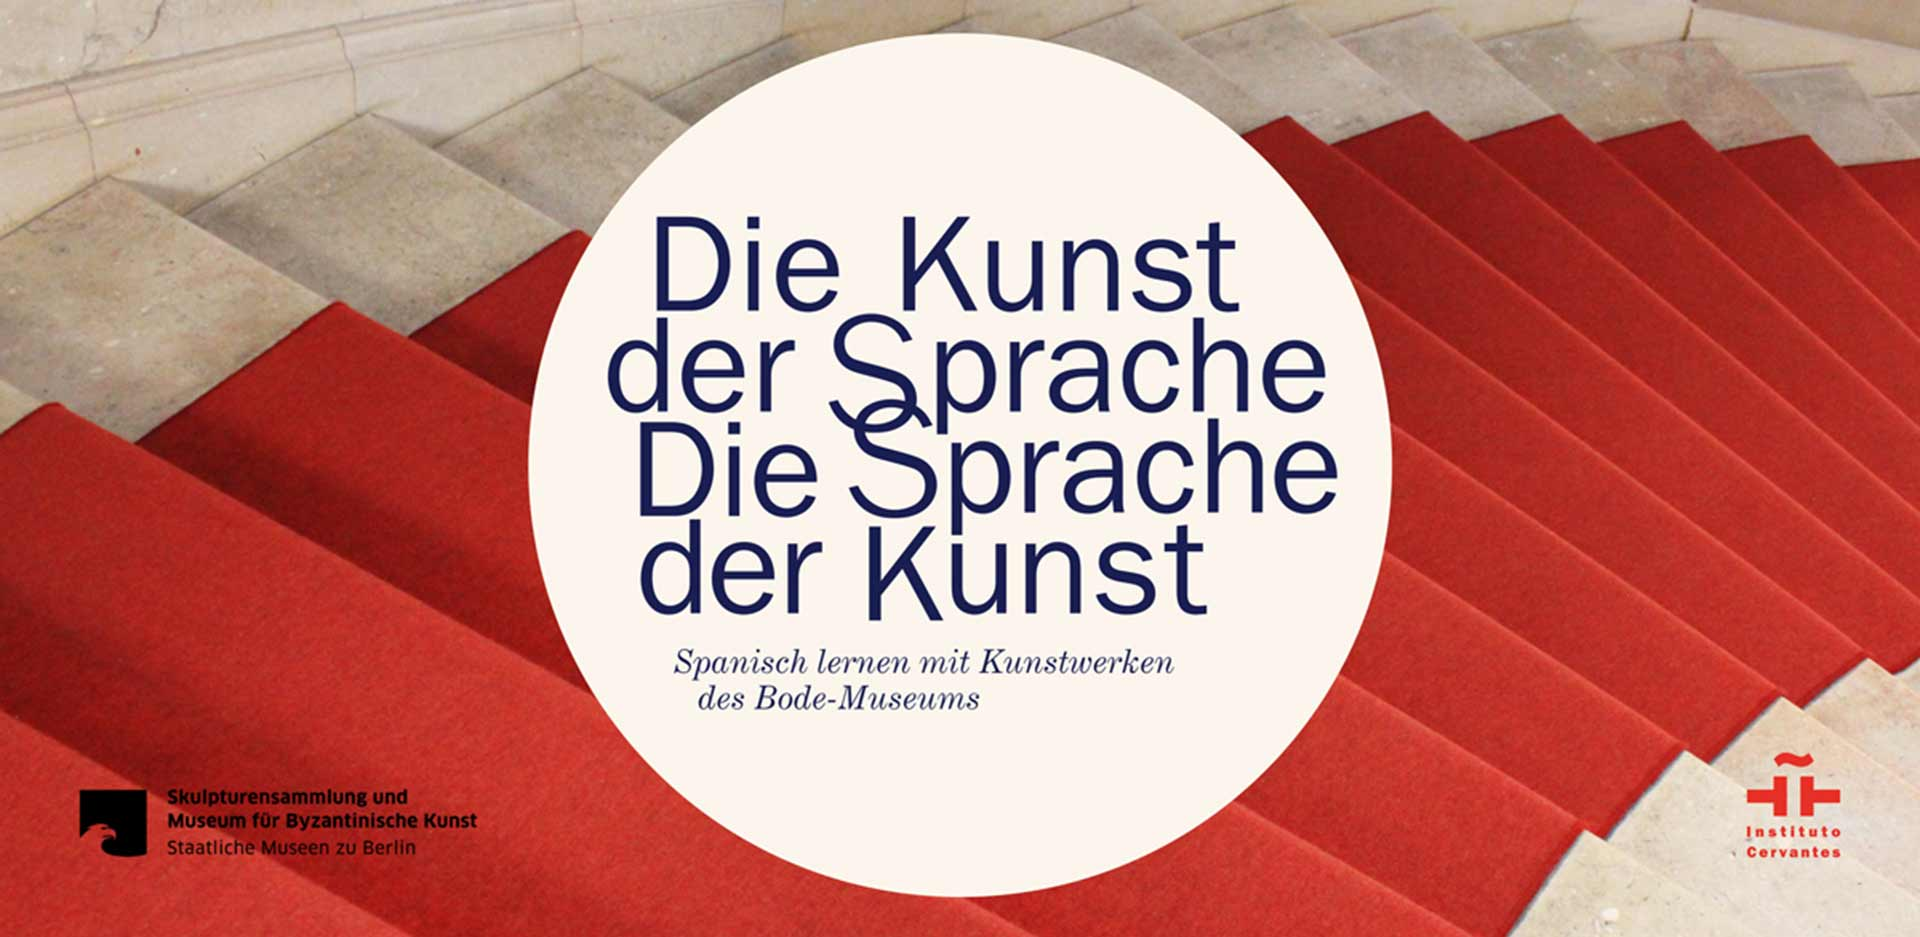 """""""Die Kunst der Sprache. Die Sprache der Kunst"""" (The Art of Language. The Language of Art). Learning Spanish at the Bode-Museum with the Instituto Cervantes"""